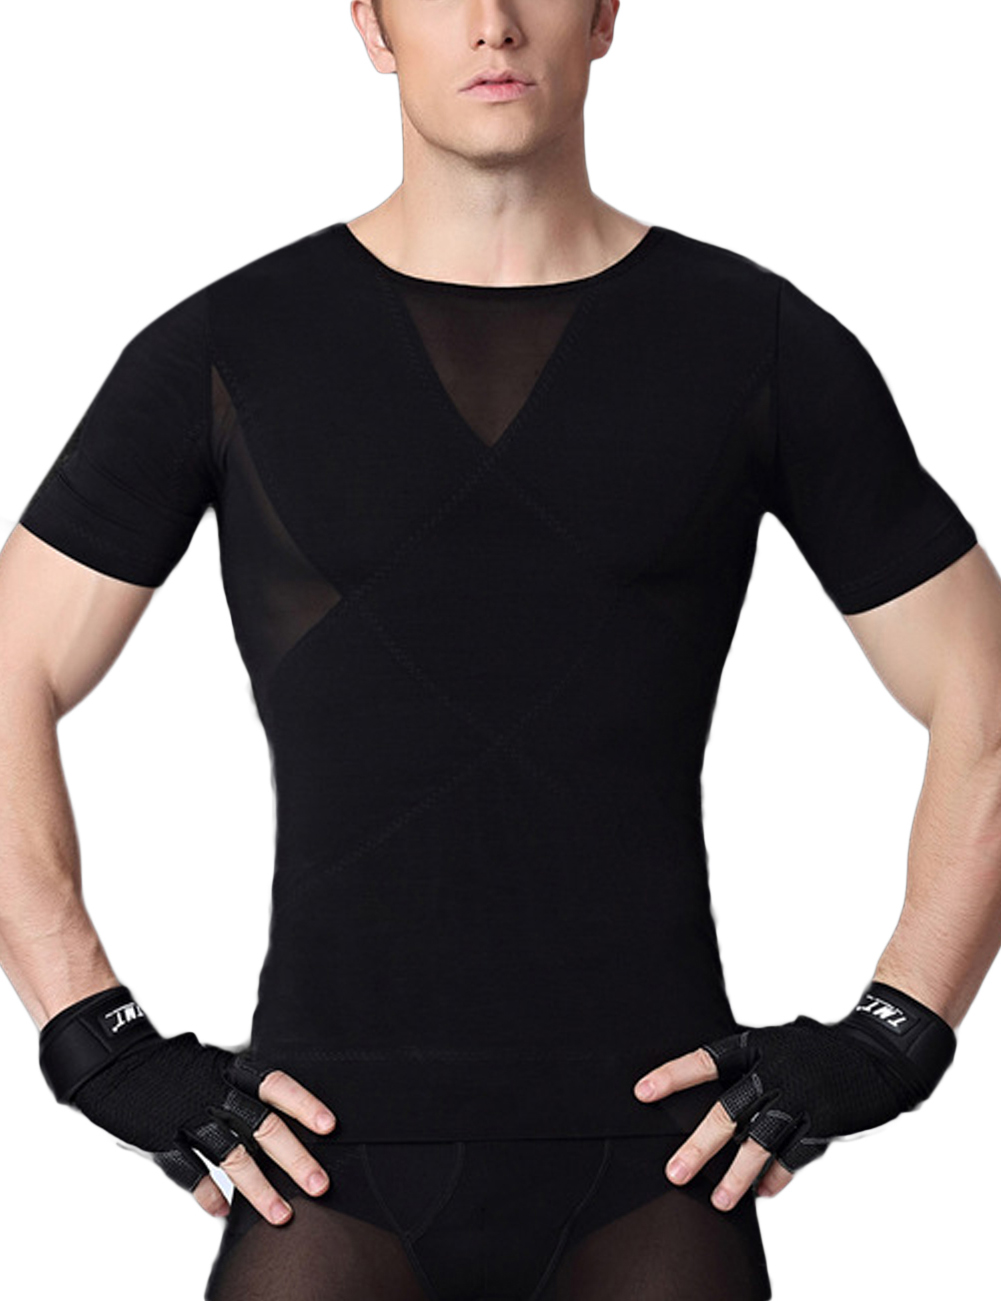 //cdn.affectcloud.com/hexinfashion/upload/imgs/Shaper/Men_Shaper/B180040BK01/B180040BK01-201911065dc2a8f931129.jpg